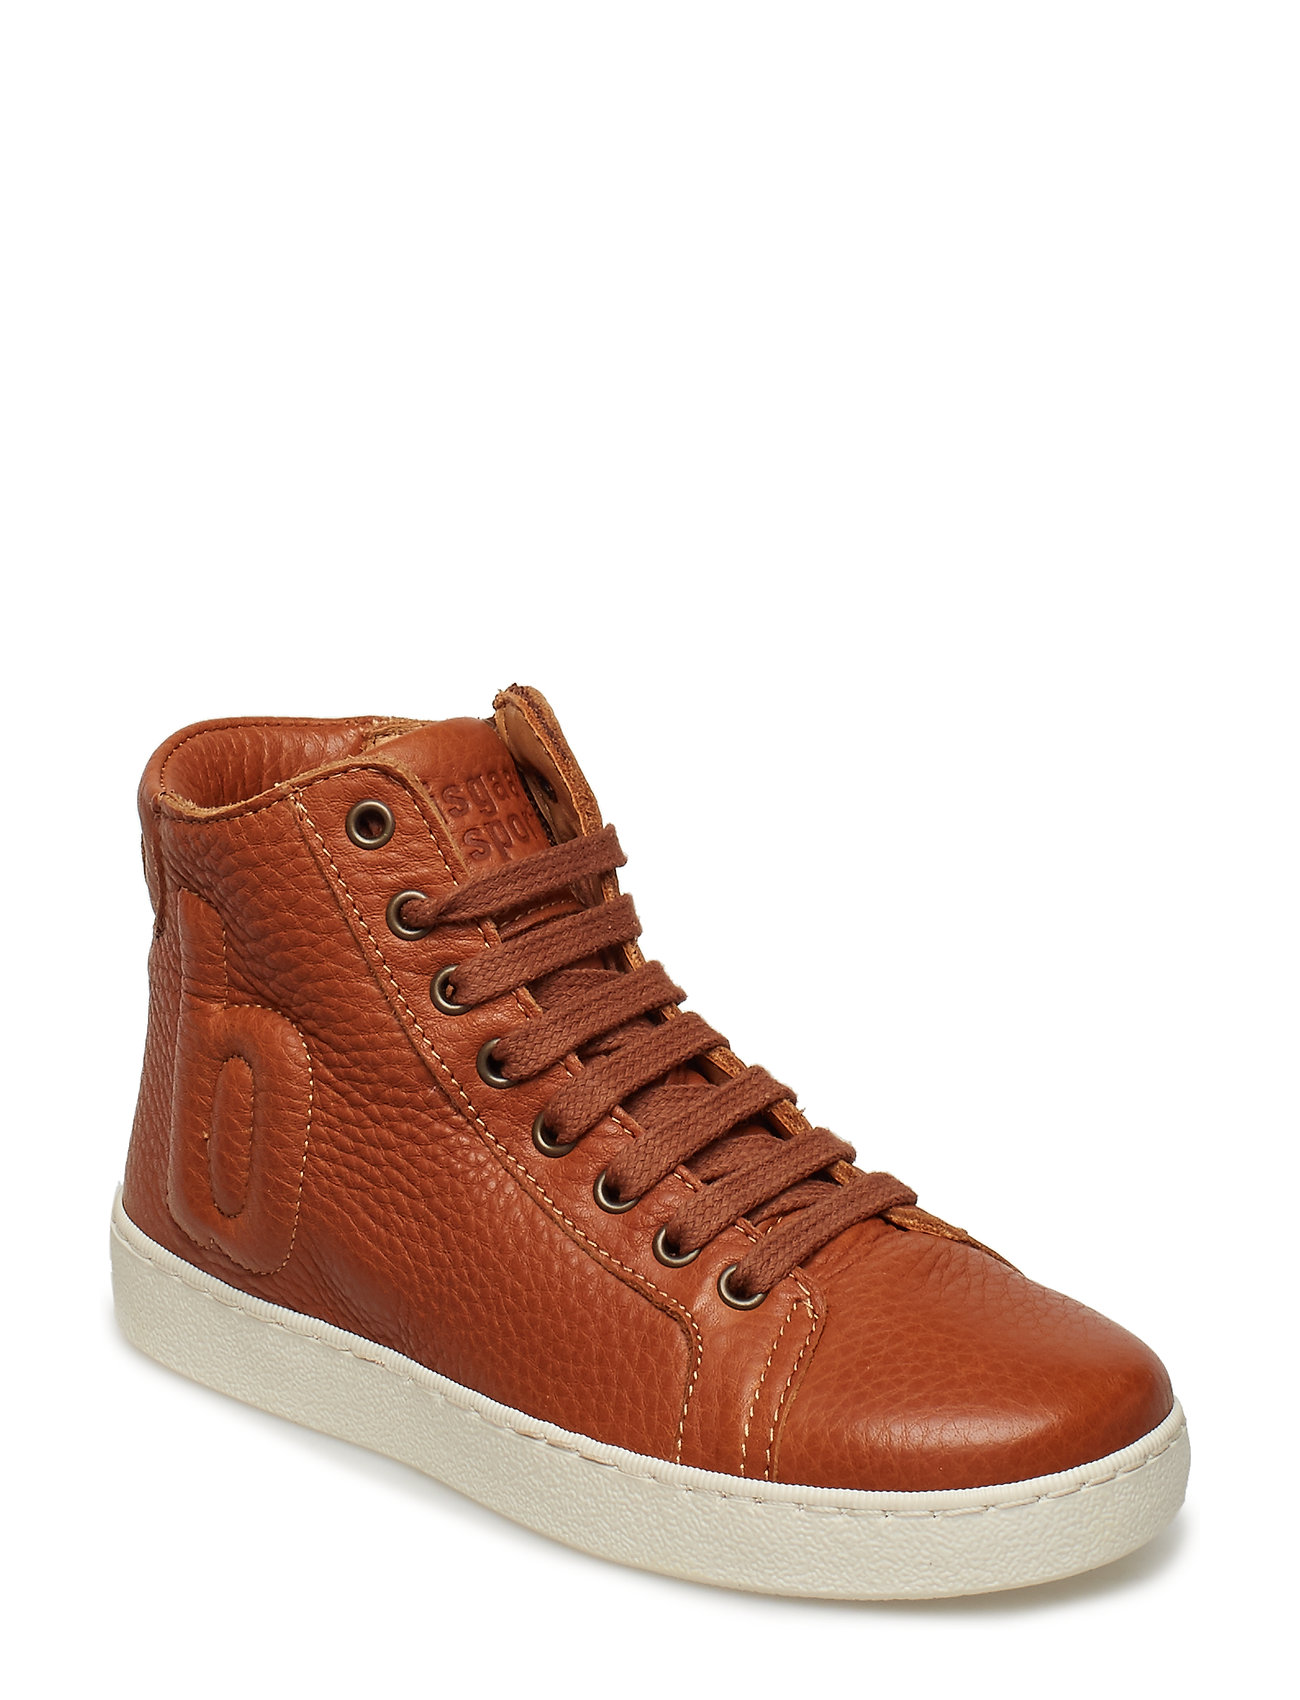 Image of Shoe With Laces Sneakers Sko Brun Bisgaard (3416435145)